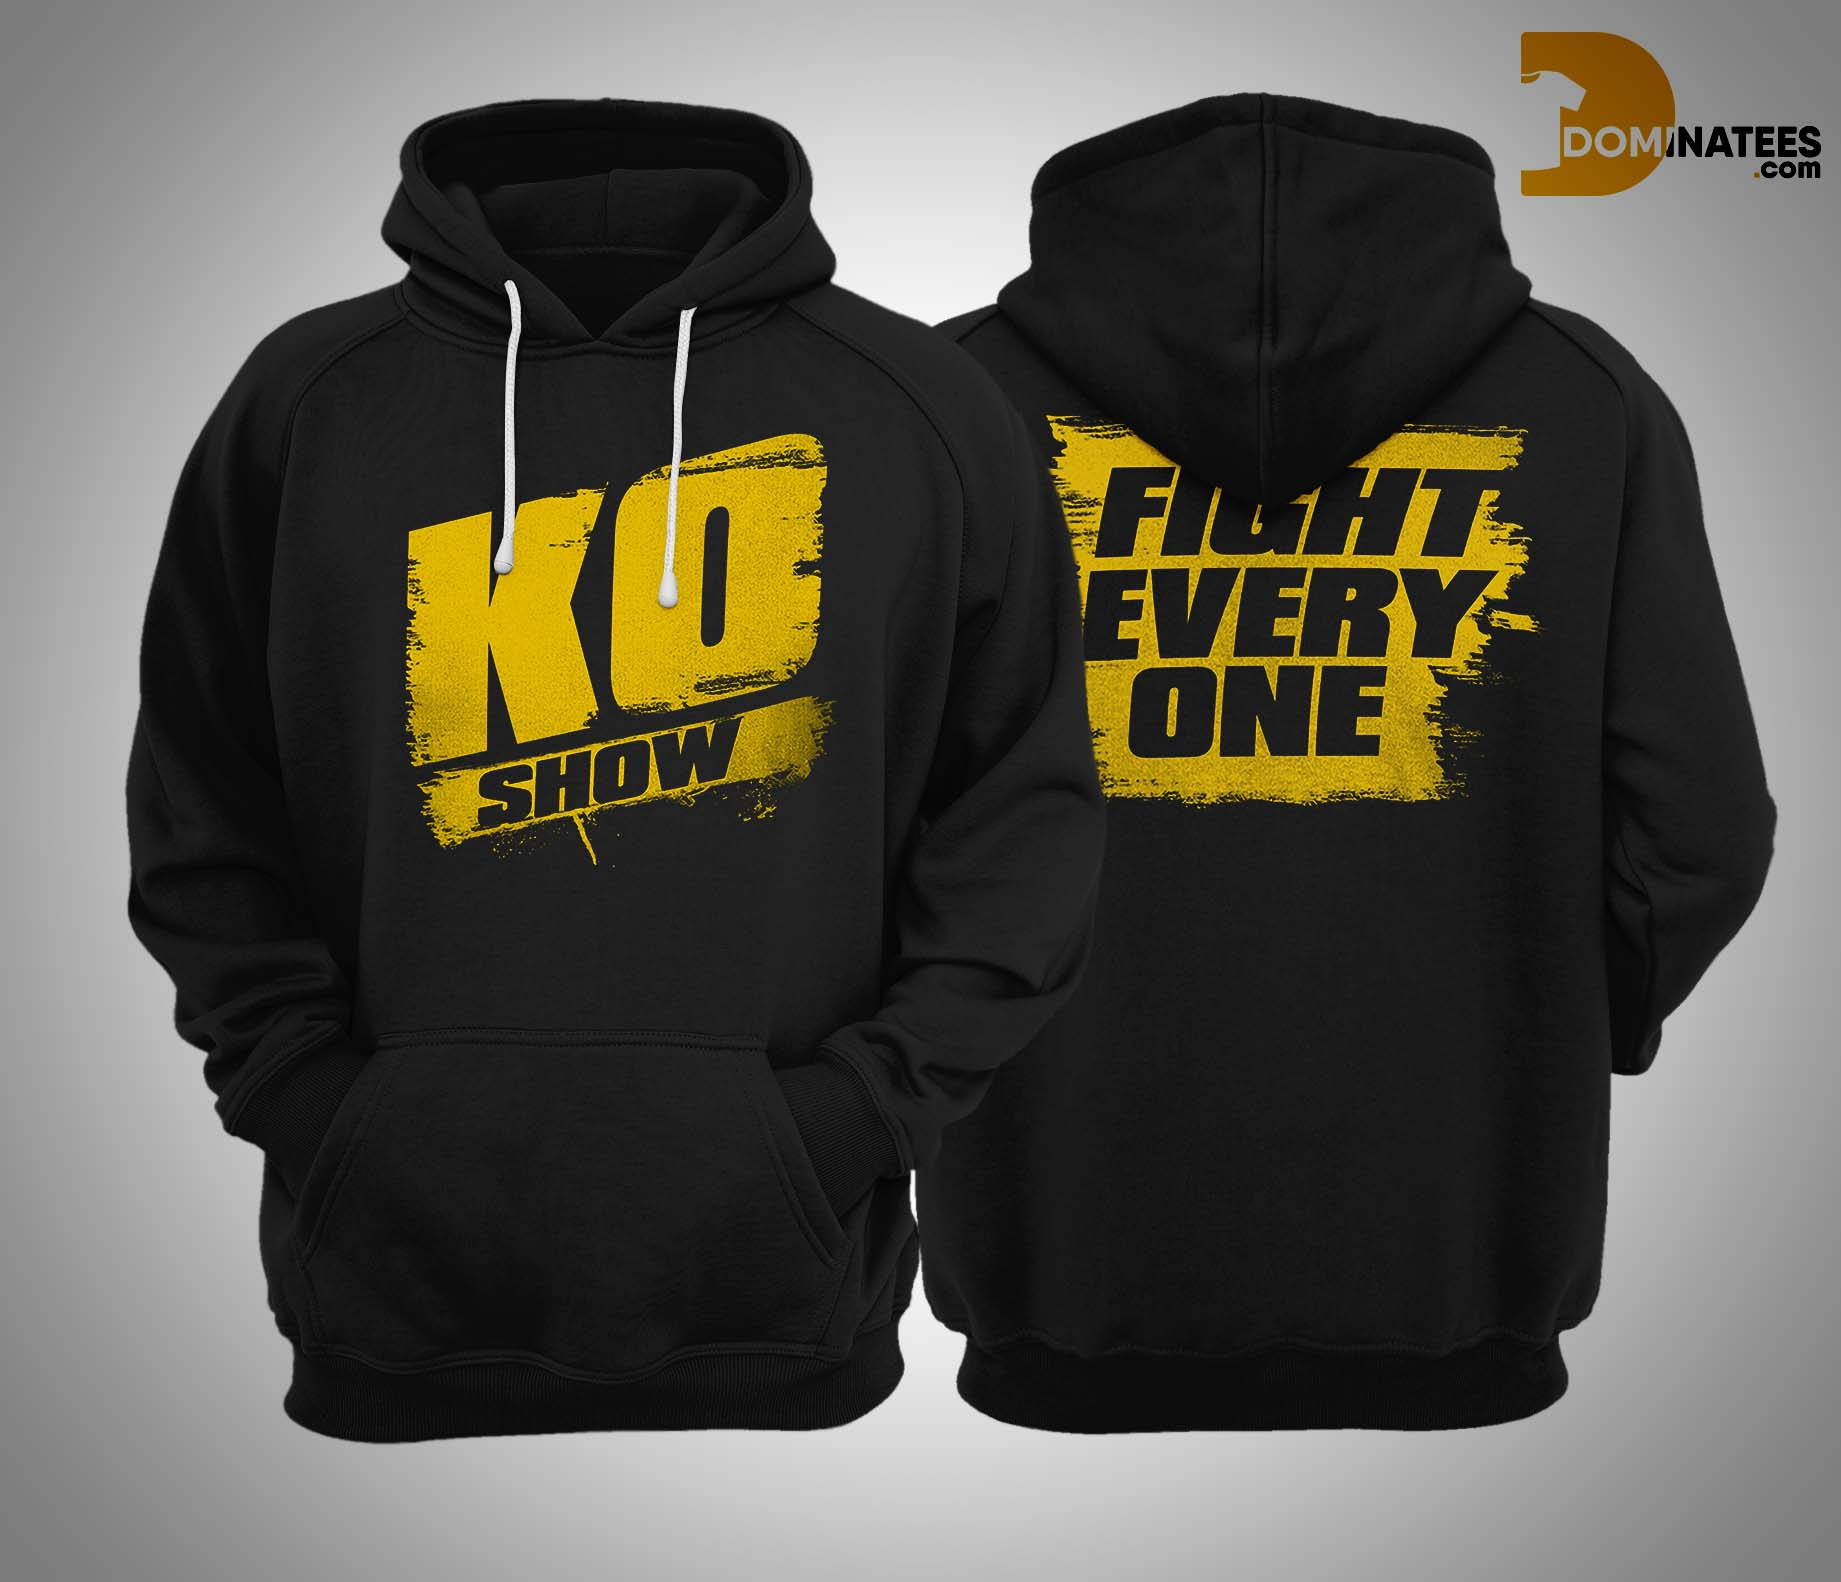 Kevin Owens KO Show Fight EveryOne Hoodie